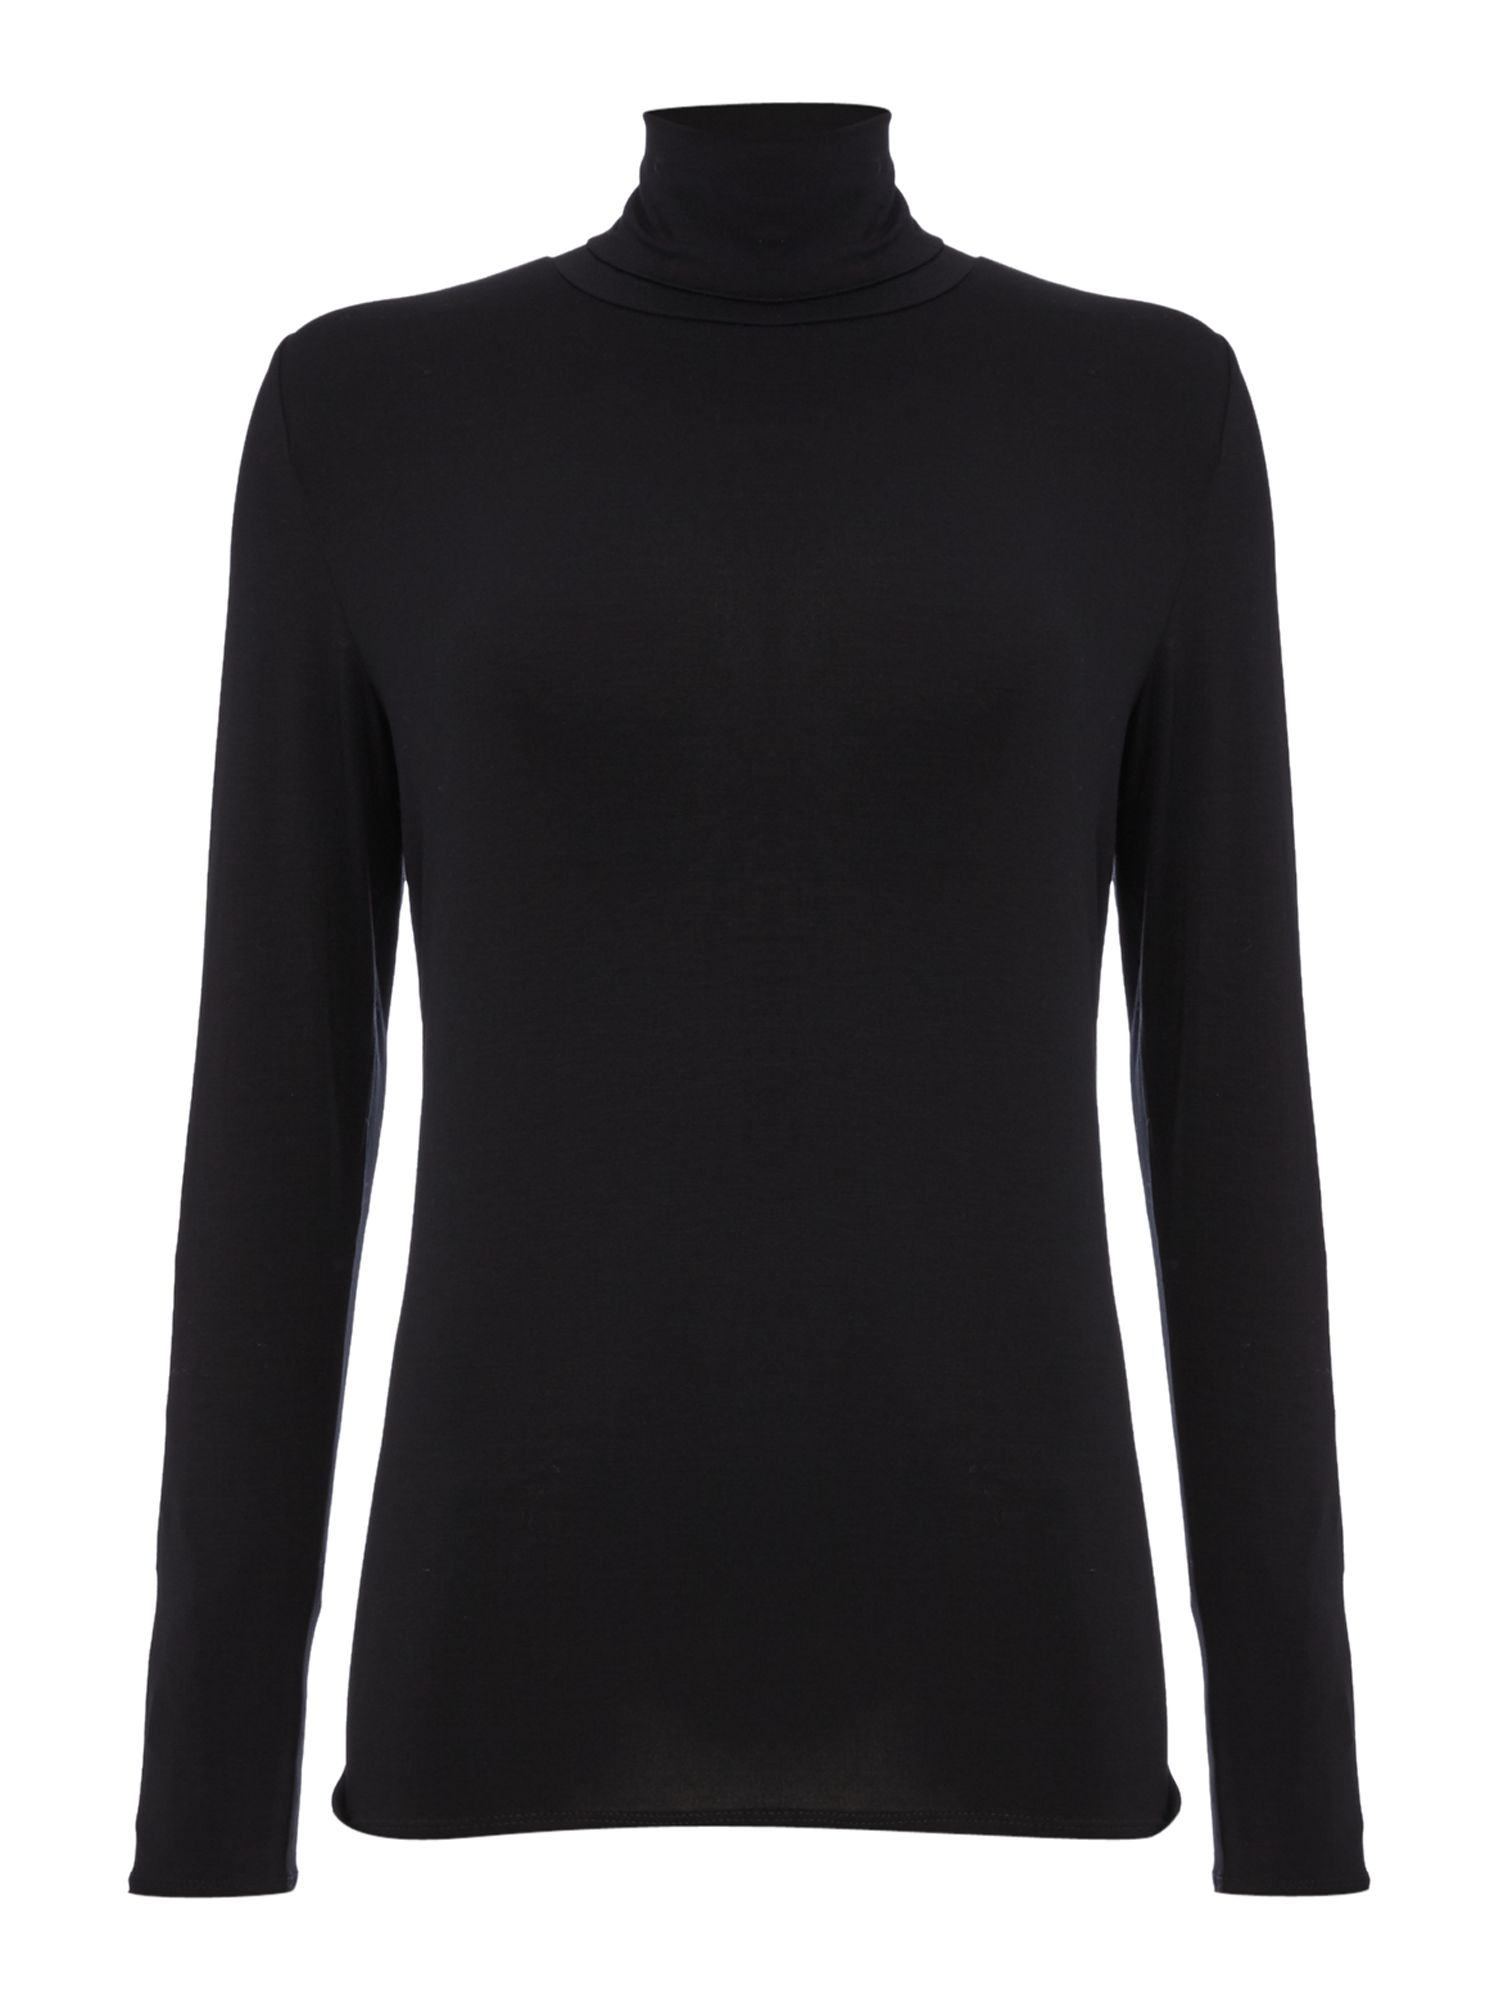 Repeat Cashmere Repeat Cashmere Roll neck top, Black